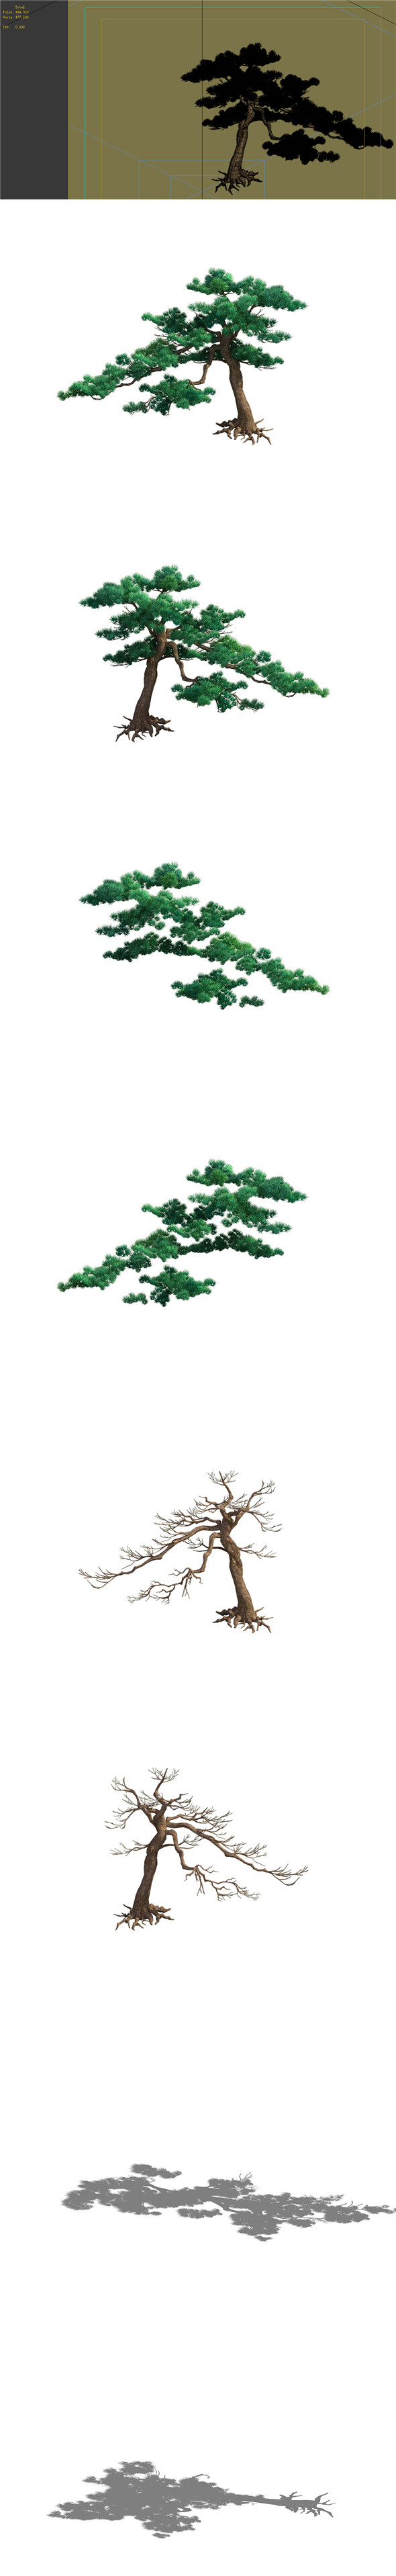 Game Model - Taoist comprehension scene - Pine 06 01 - 3DOcean Item for Sale